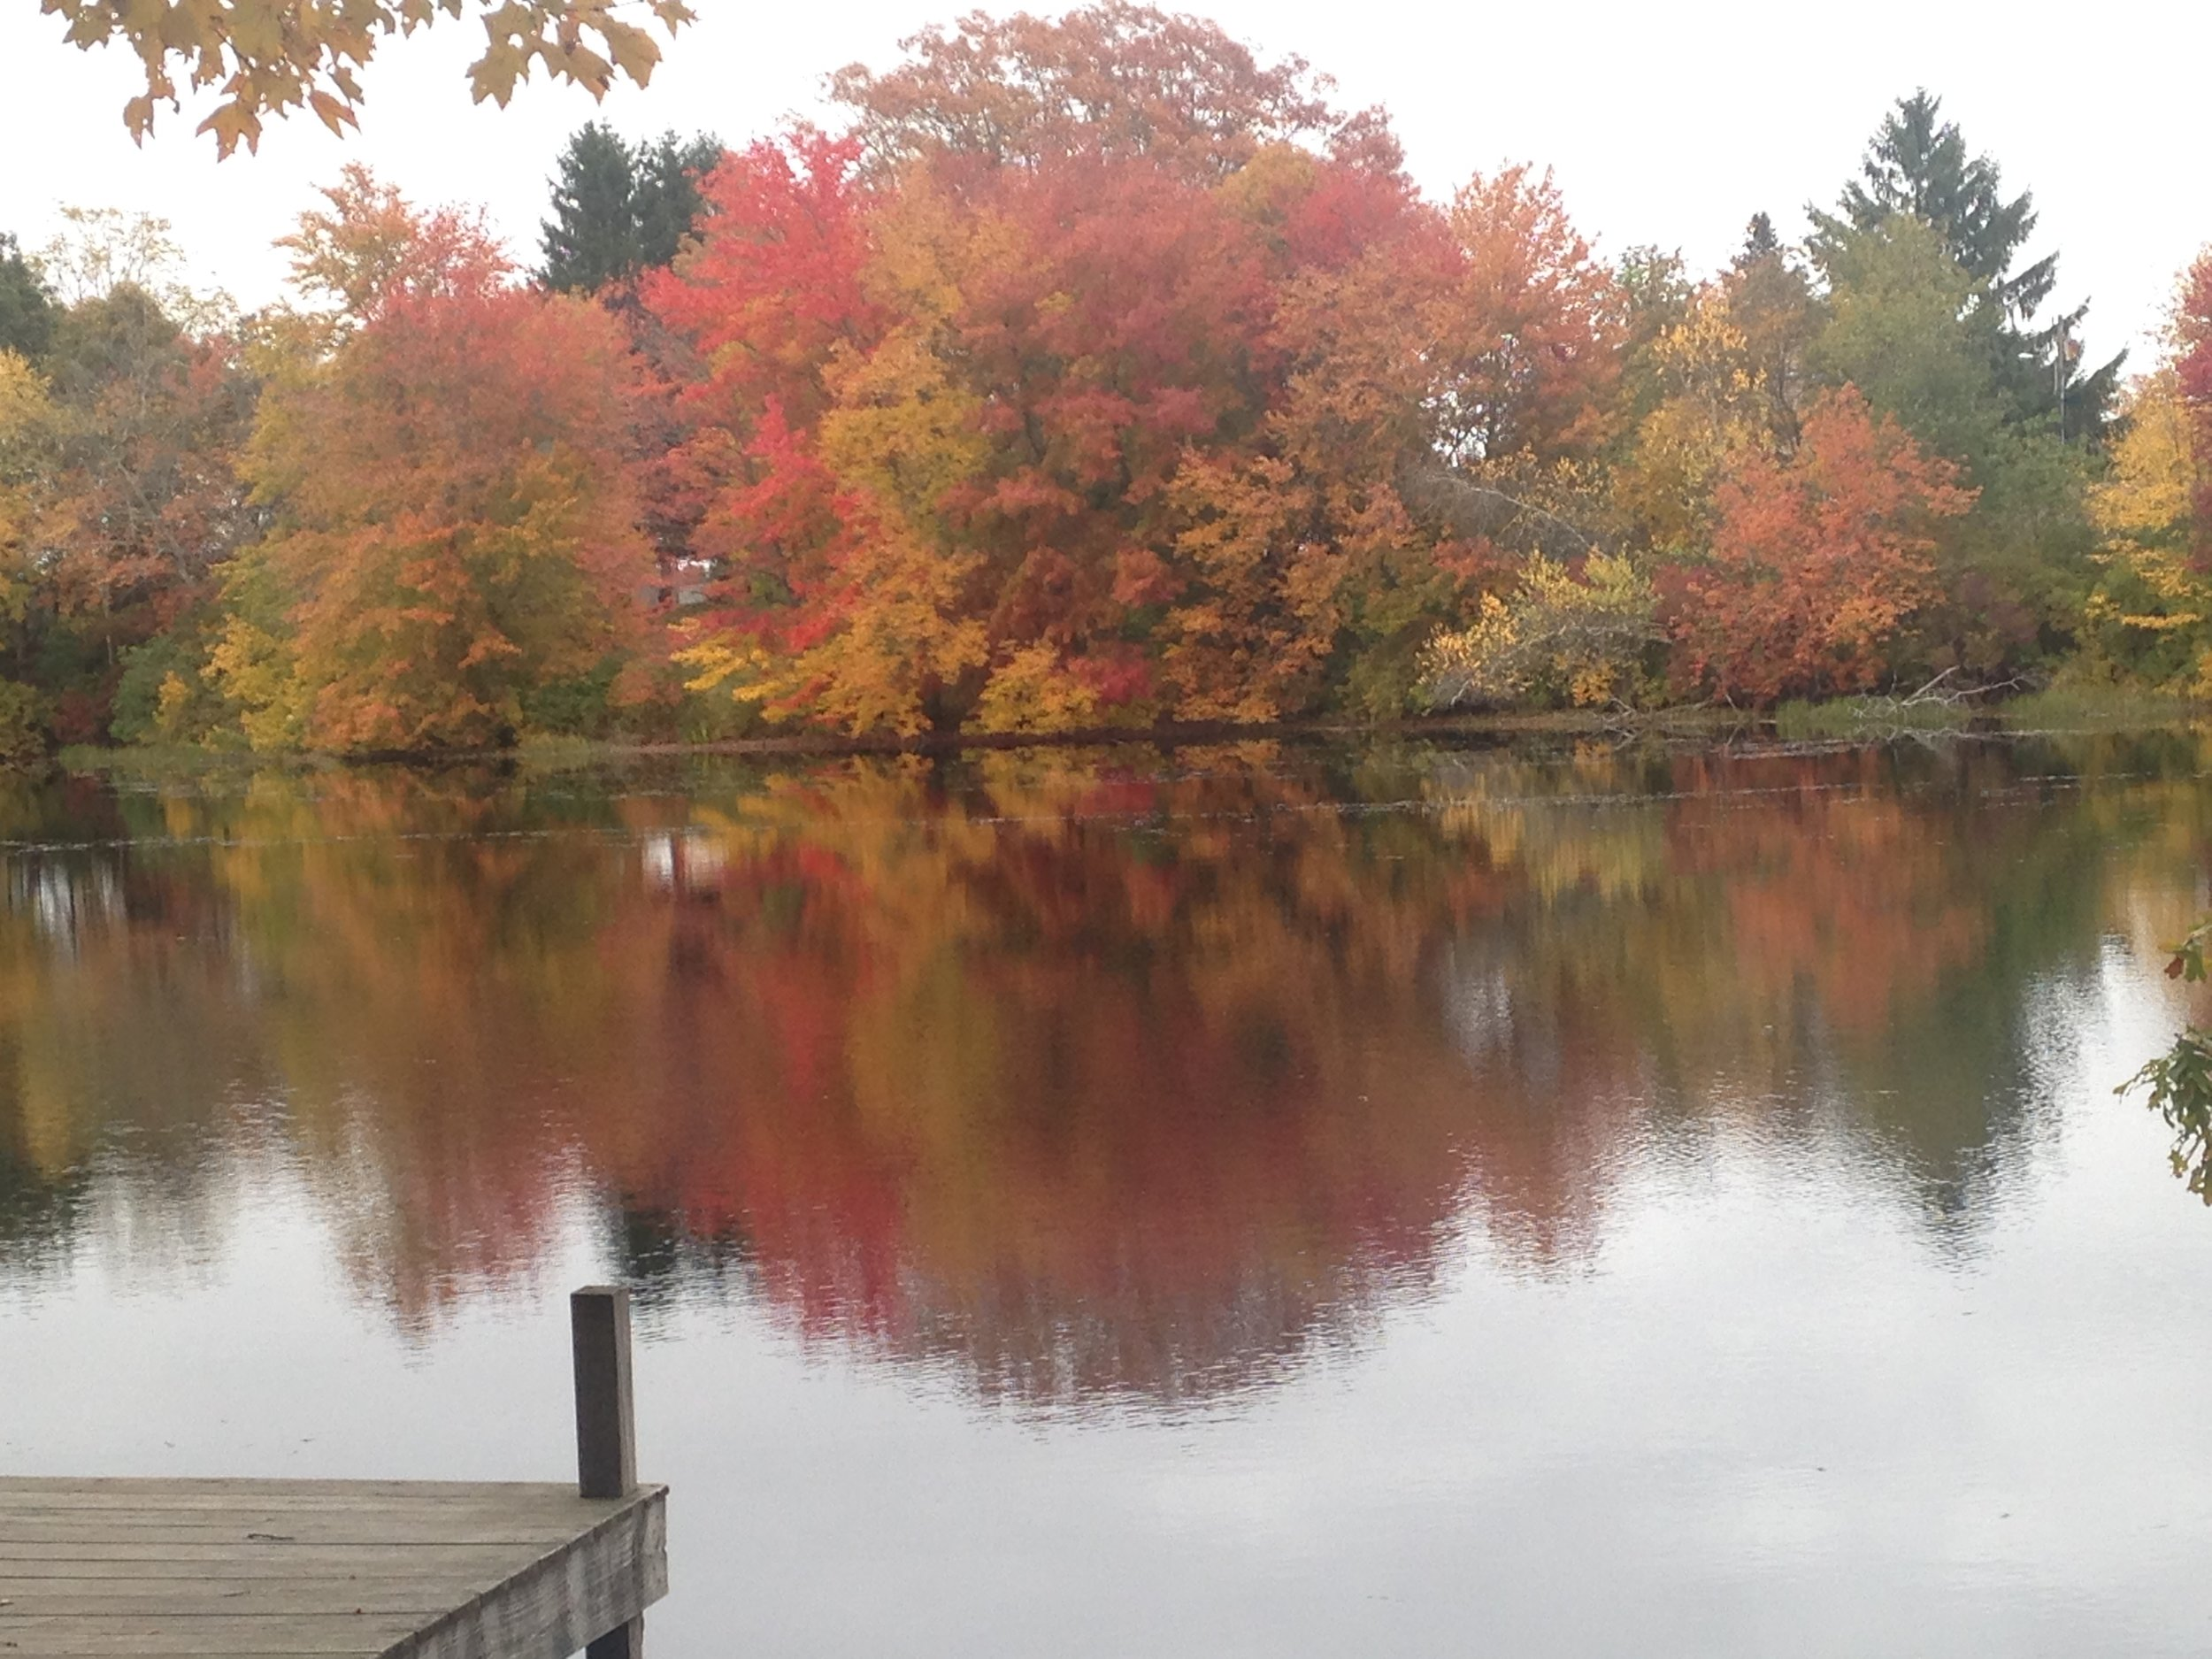 Fall foliage in Rhode Island — Megan Sumeracki